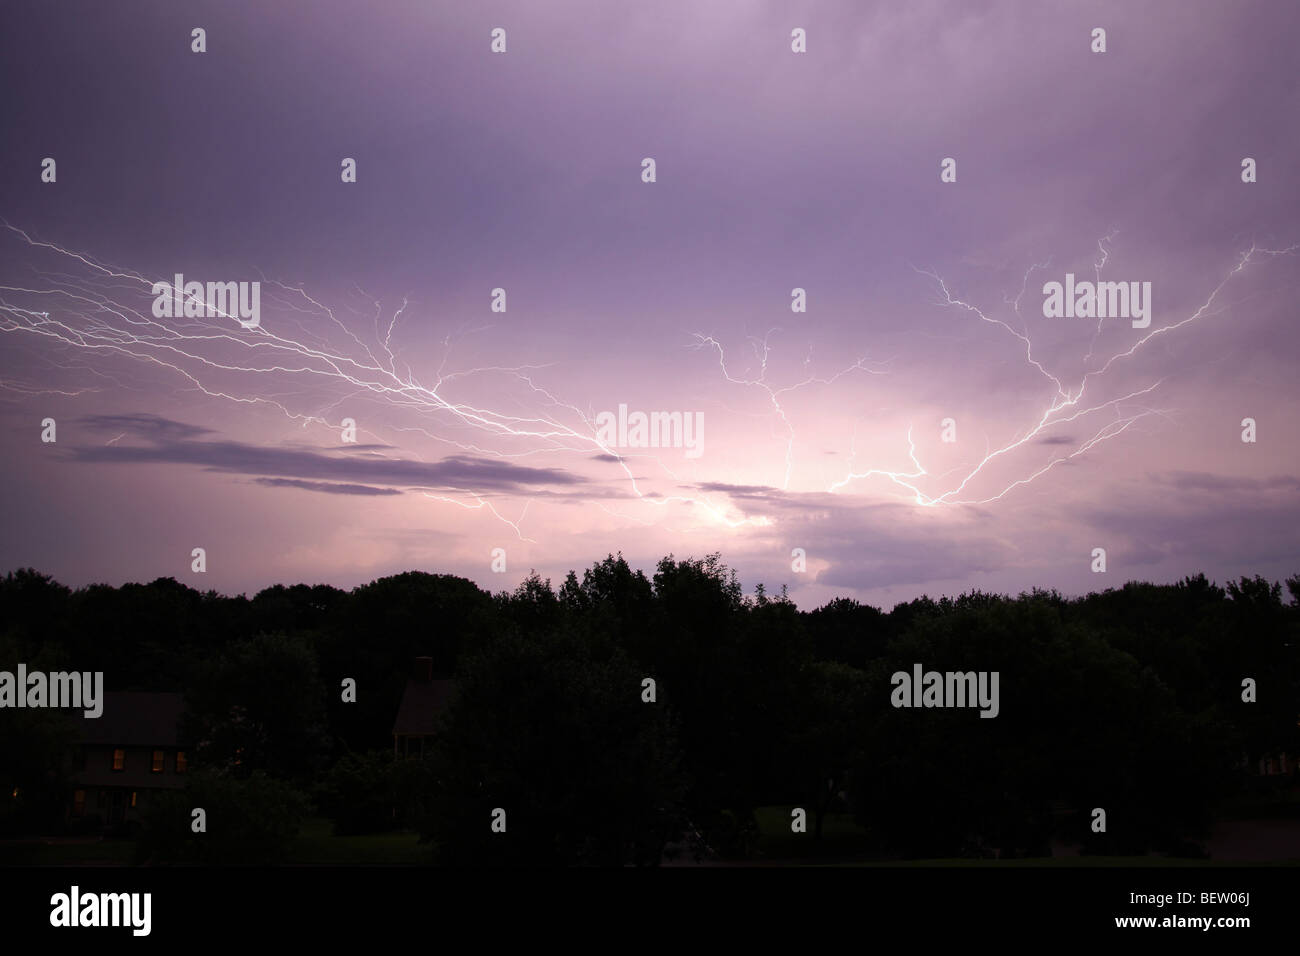 Lightening strike over woods and houses - Stock Image